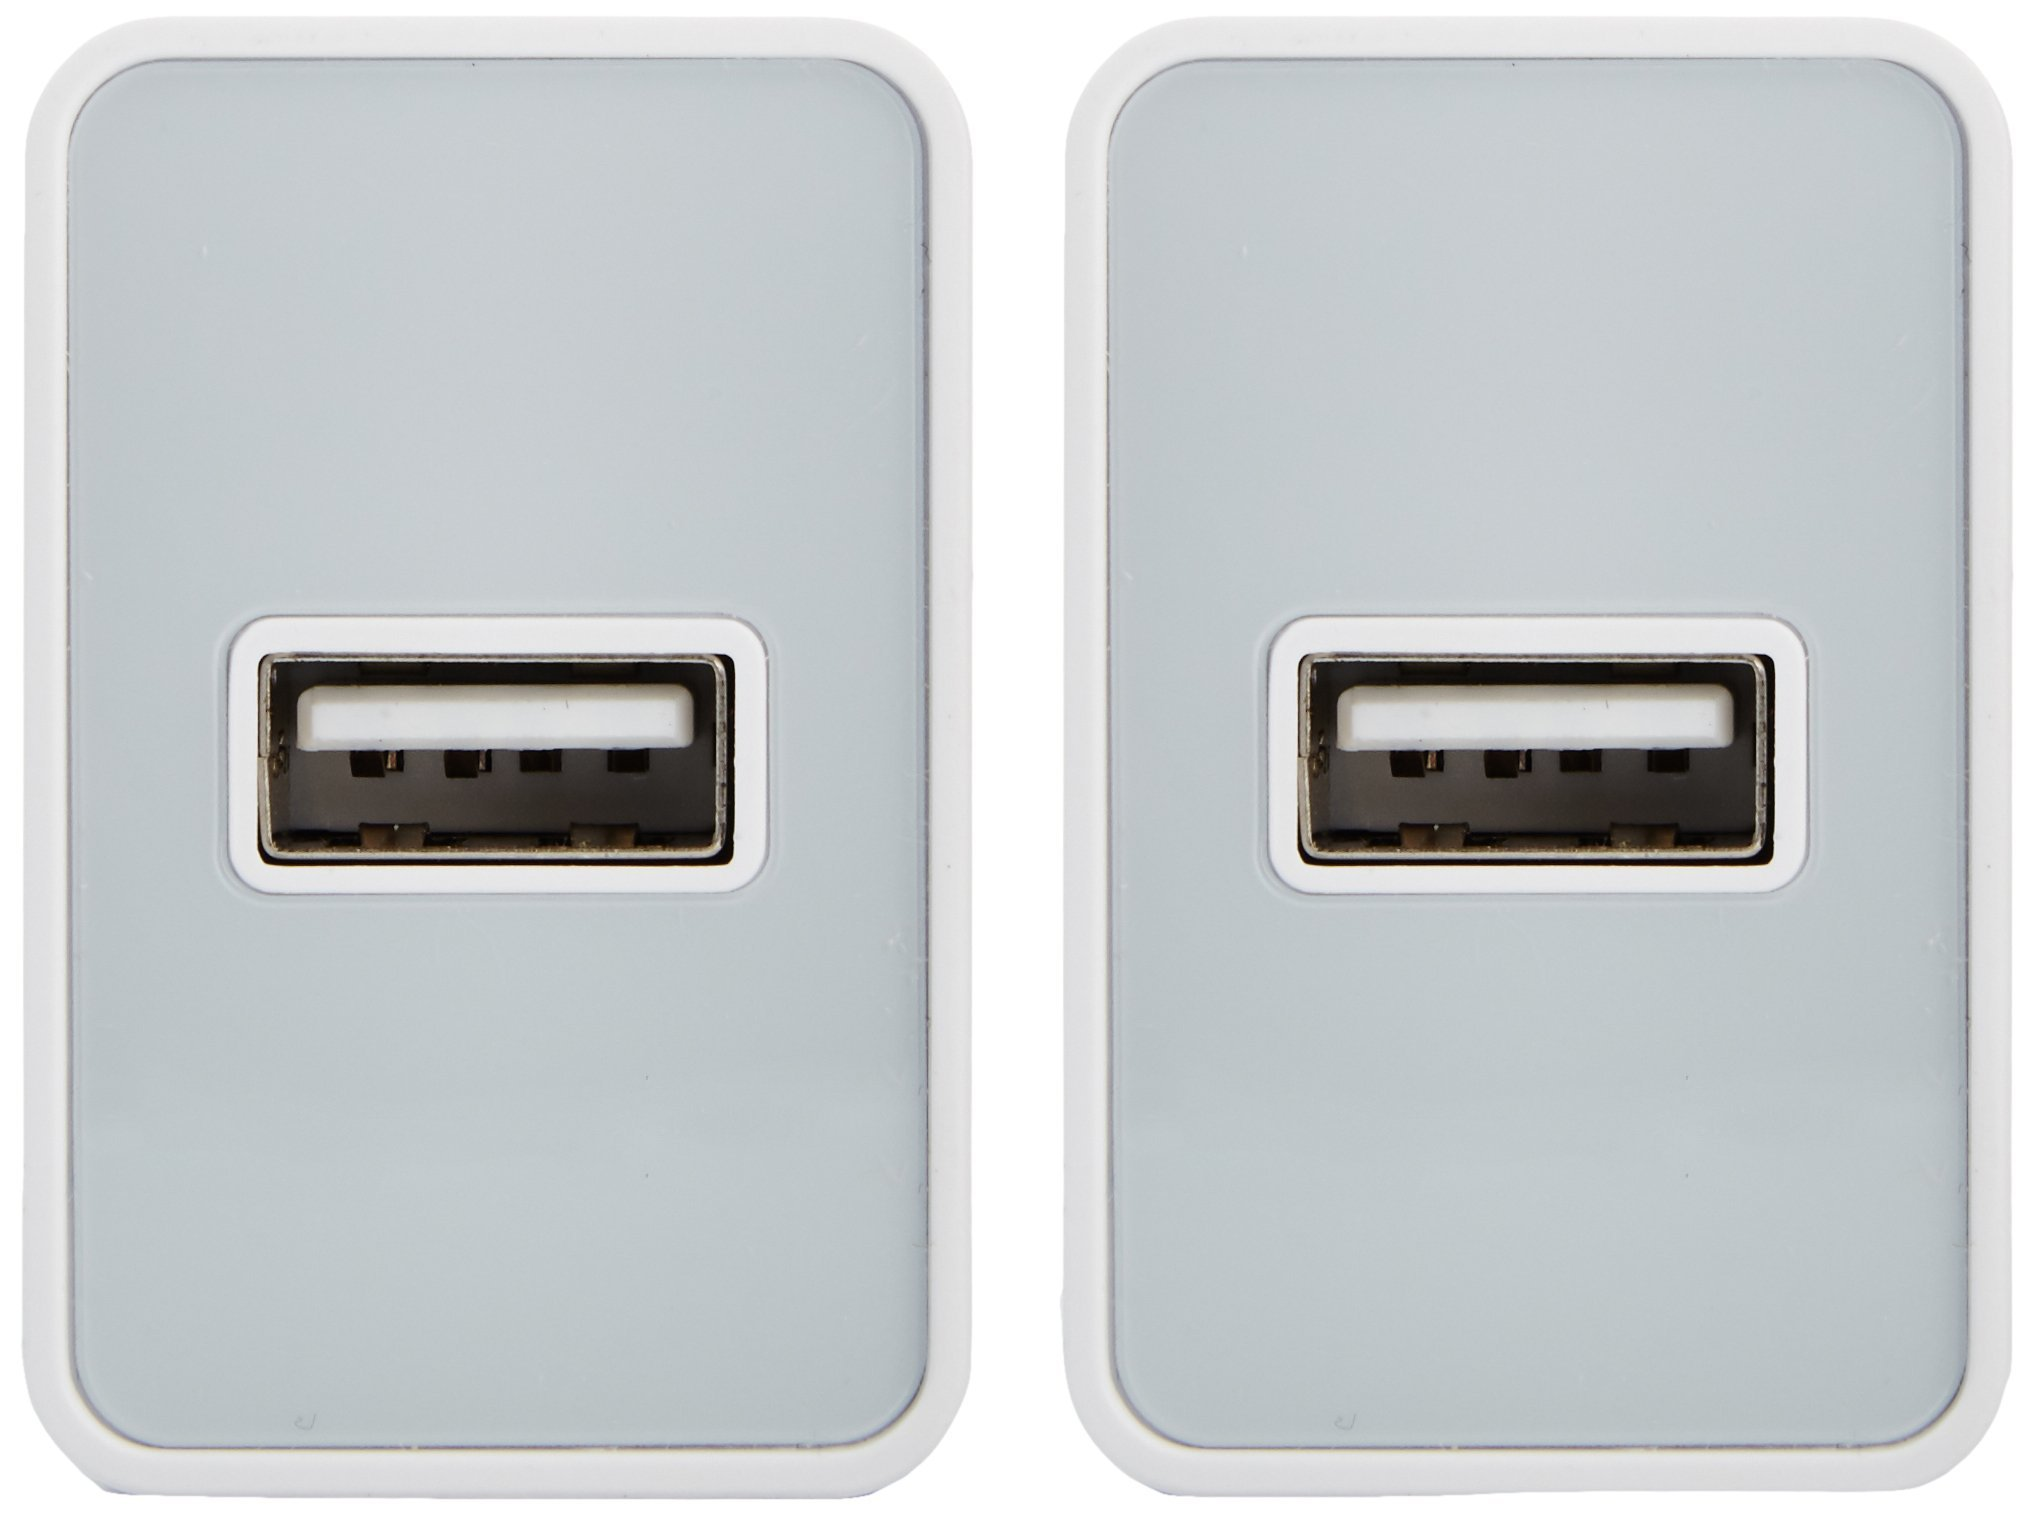 AmazonBasics One-Port USB Wall Charger (12-Watt) Compatible With iPhone and Samsung Phones - White (2-Pack) by AmazonBasics (Image #3)